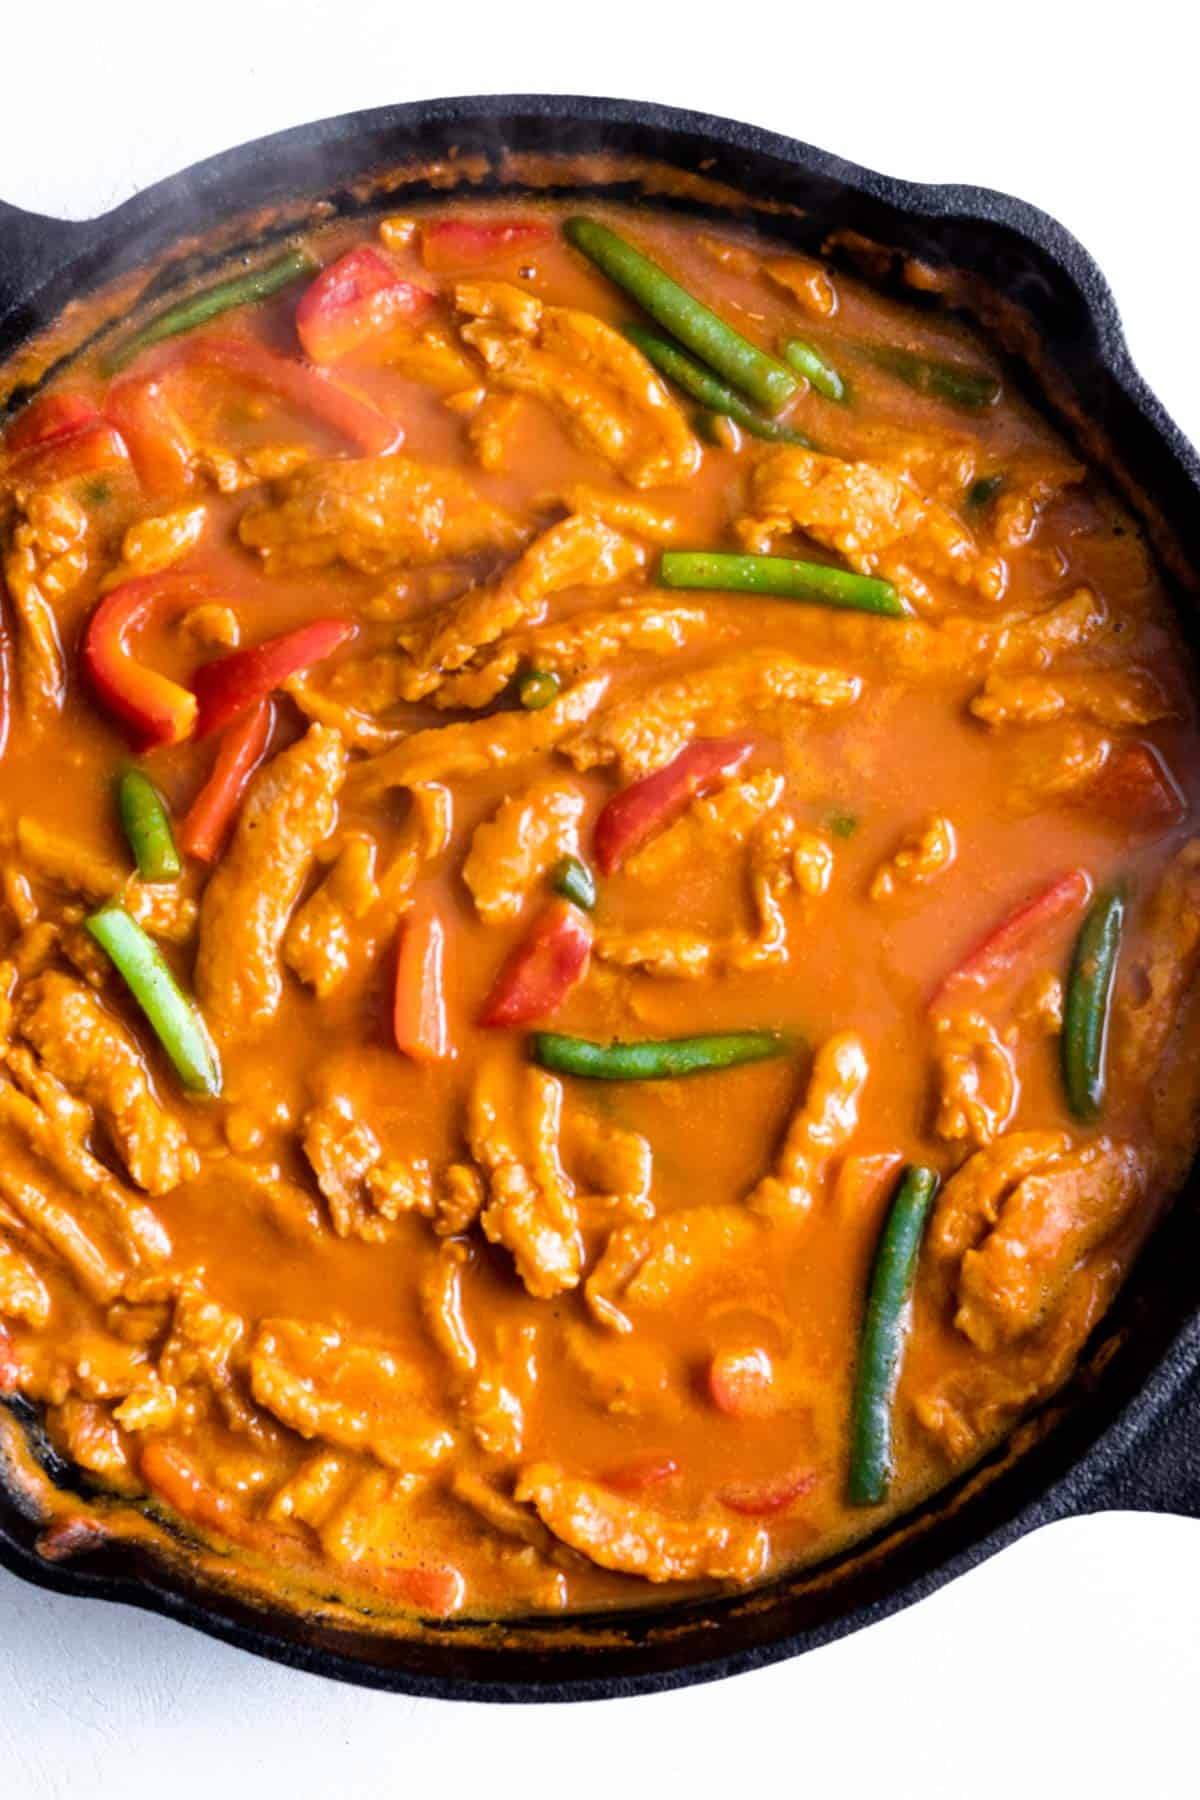 Green beans and bell pepper added into curry.